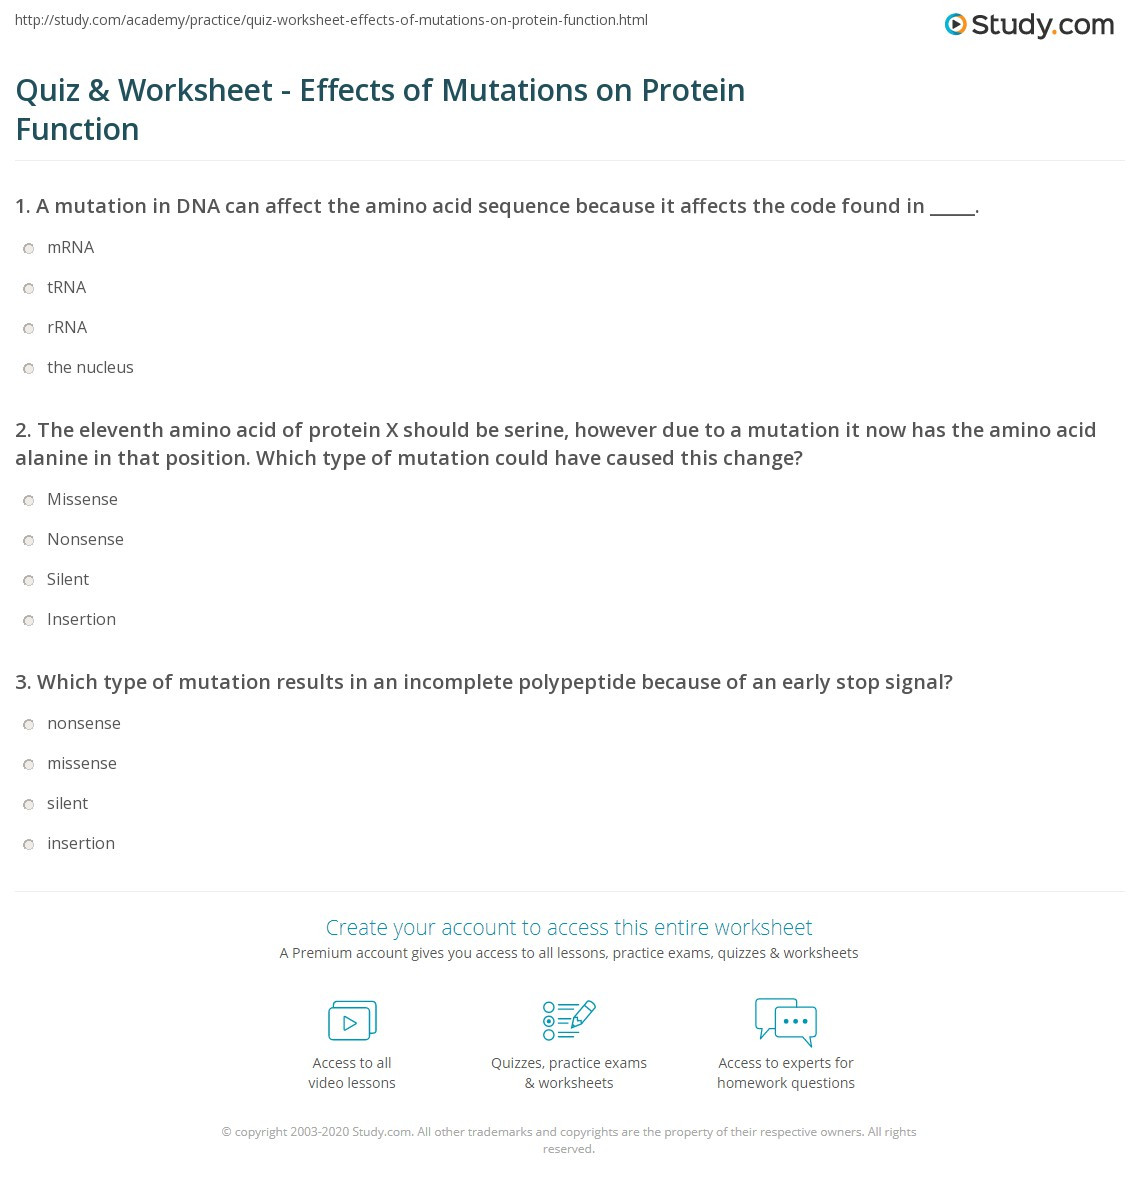 Mutations Worksheet Middle School Quiz & Worksheet Effects Of Mutations On Protein Function